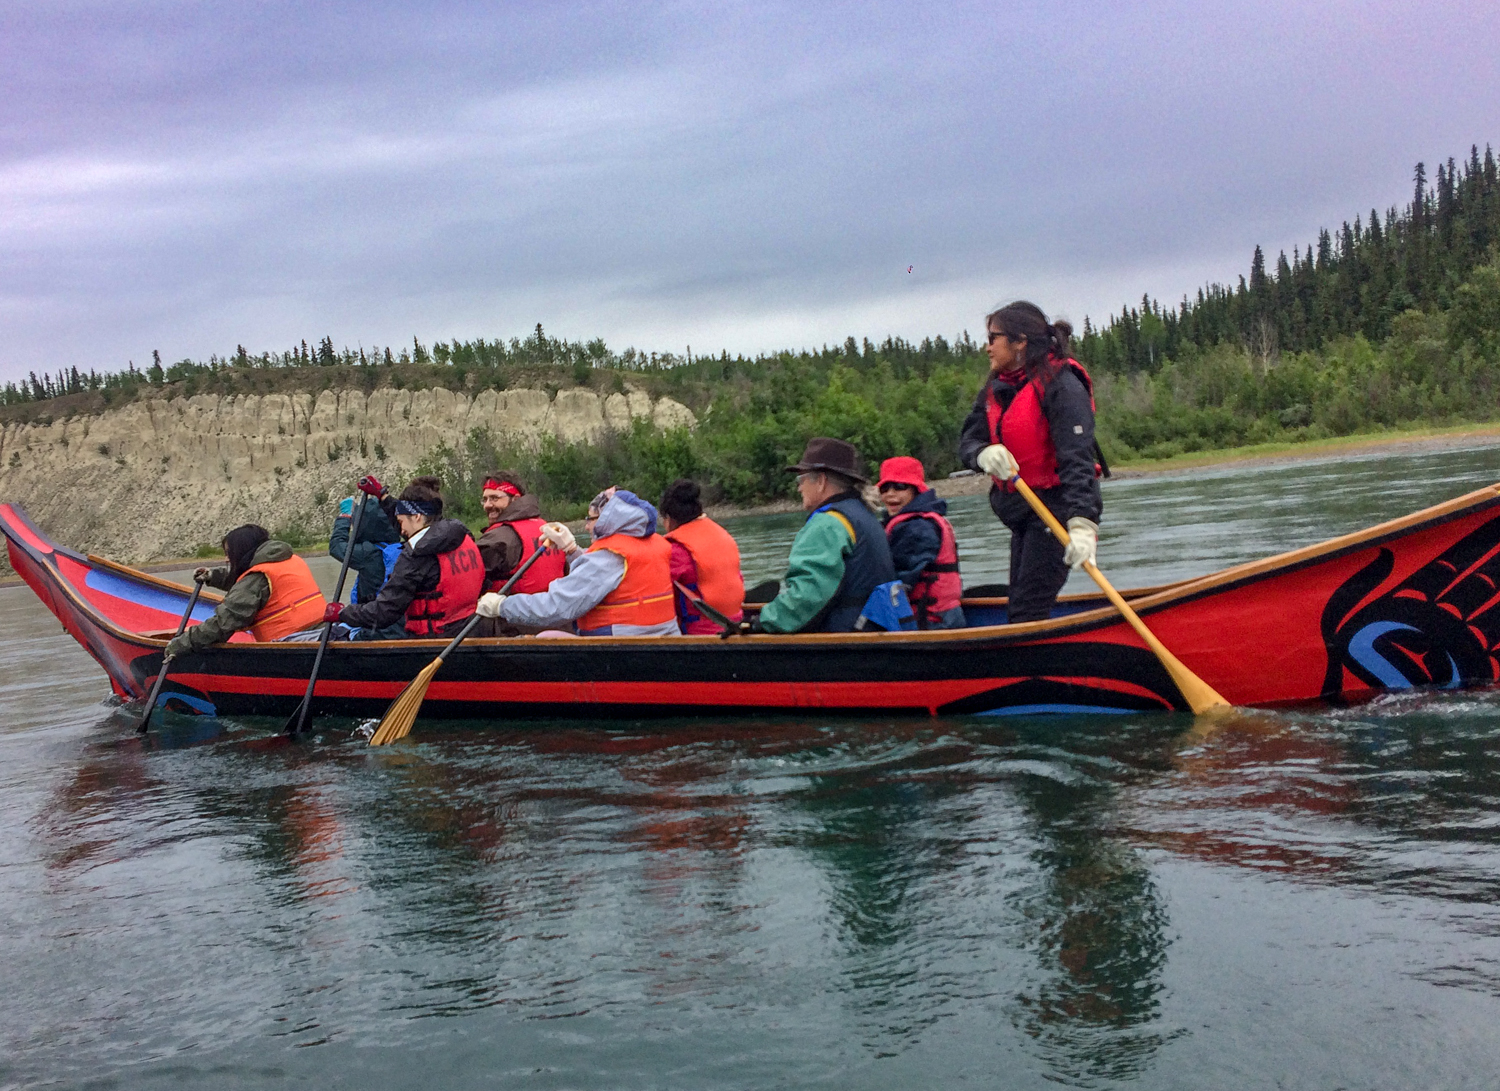 RIVER CONNECTION - By Katie JacobsAs Indigenous people reclaim their culture, the art and practice of making a dugout canoe and carrying out their traditional canoe trips are helping elders and youth connect to their land and ancestors.Read more...